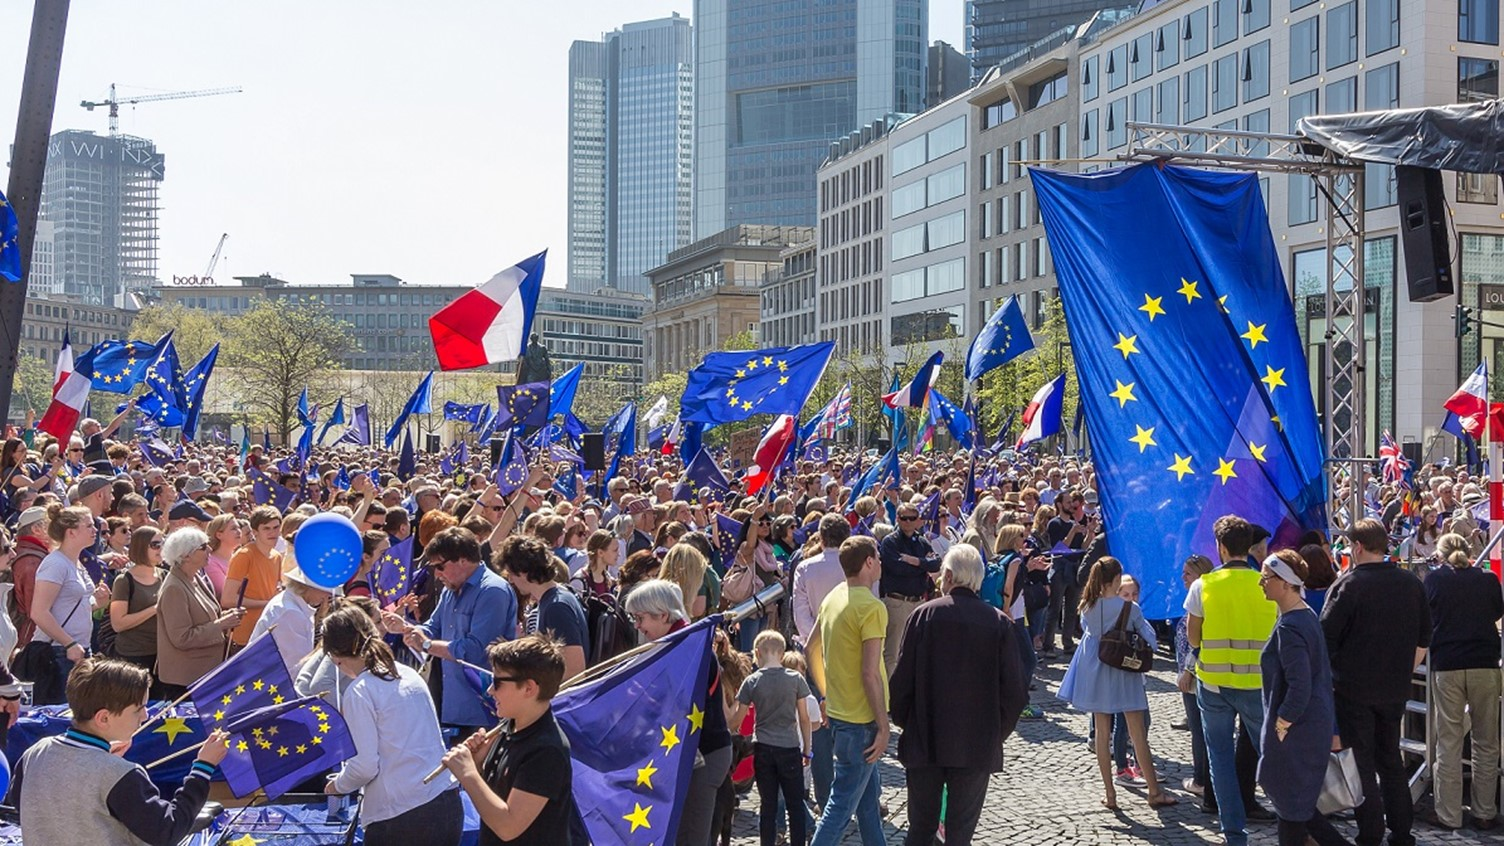 ERASMUS AND CIVIL SERVICE AS THE WAY FORWARD TO A EUROPEAN DEMOS: RATIONALE AND FEASIBILITY